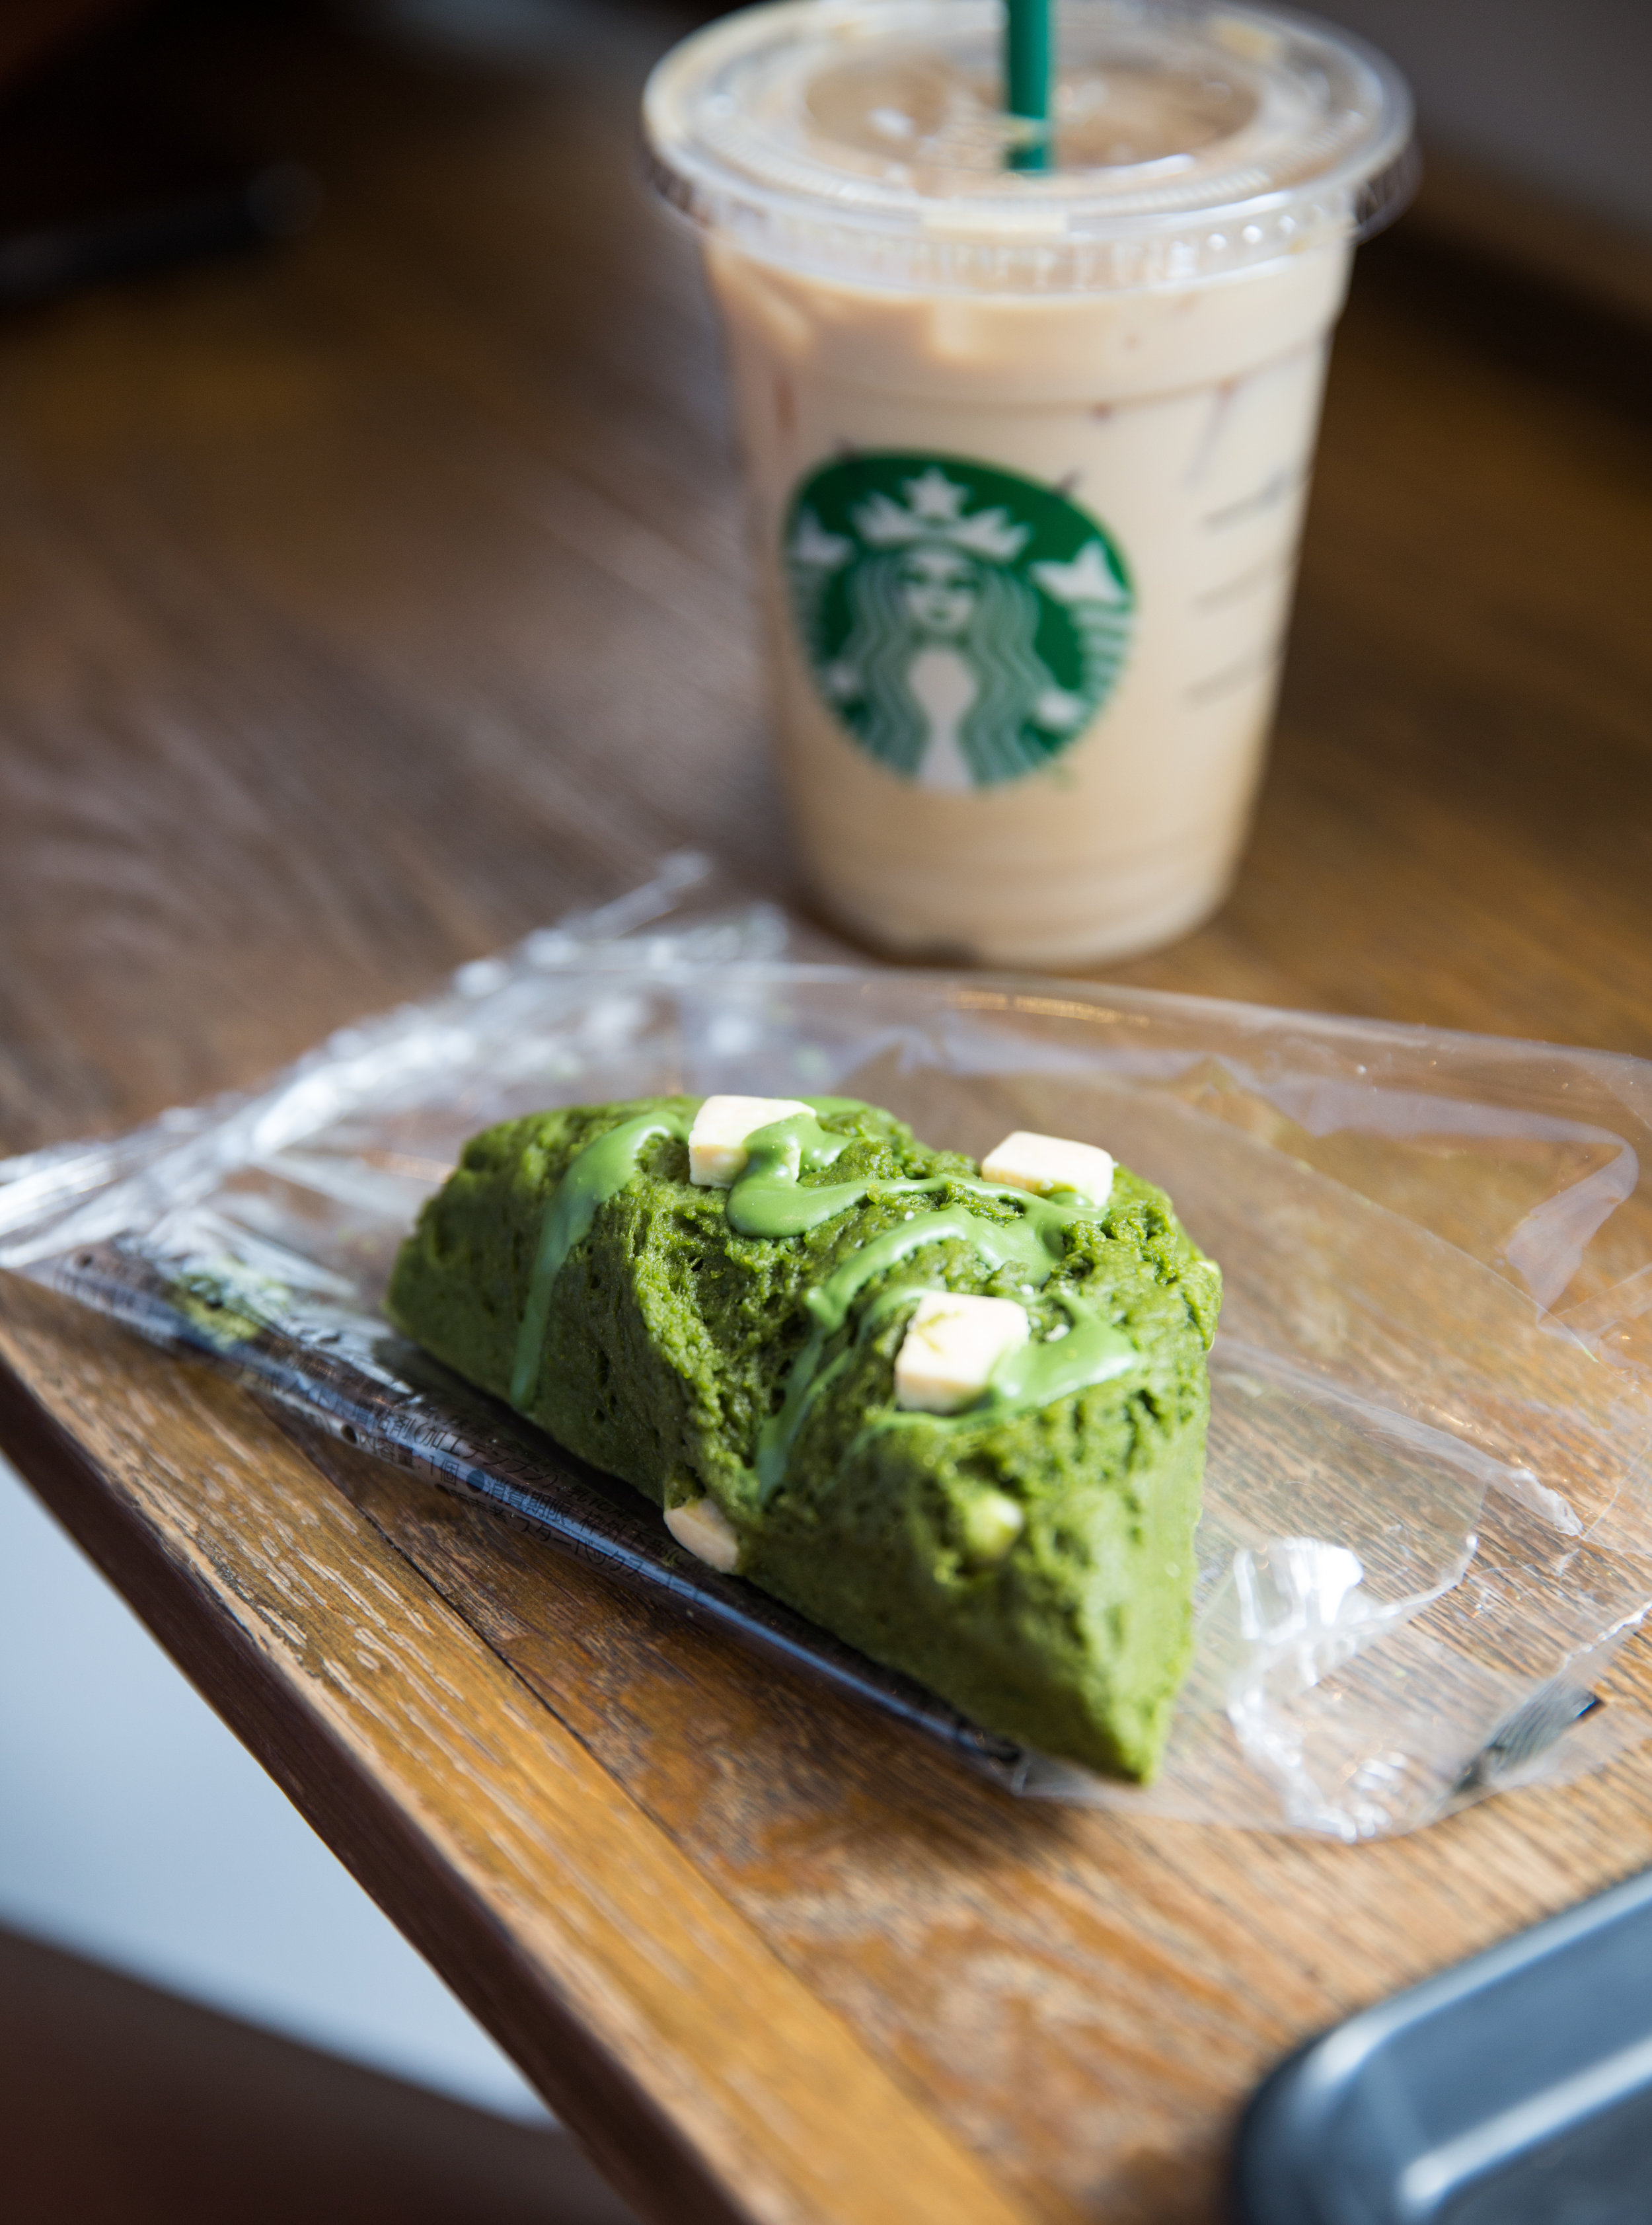 ' Sweet ' by Little Dragon | Starbucks next to Shibuya crossing has an excellent selection of matcha flavored treats with balcony views to match.